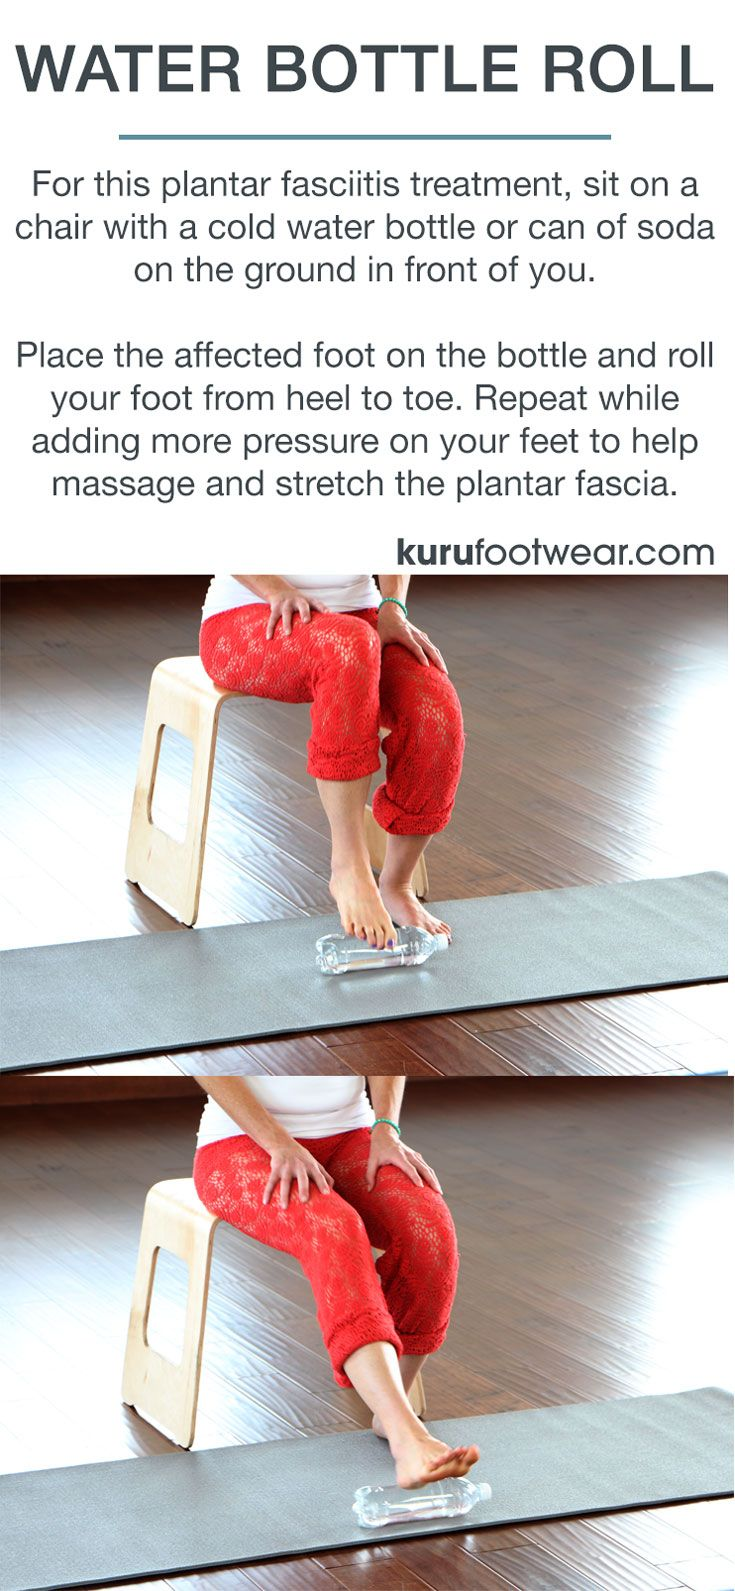 WATER BOTTLE ROLL FOR PLANTAR FASCIITIS. Best Treatment for Plantar Fasciitis Simple, proven plantar fasciitis treatments from the #1 favorite shoe for plantar fasciitis. Get ready to focus on others and be happy. Click to read 6 best treatments... www.kurufootwear.com